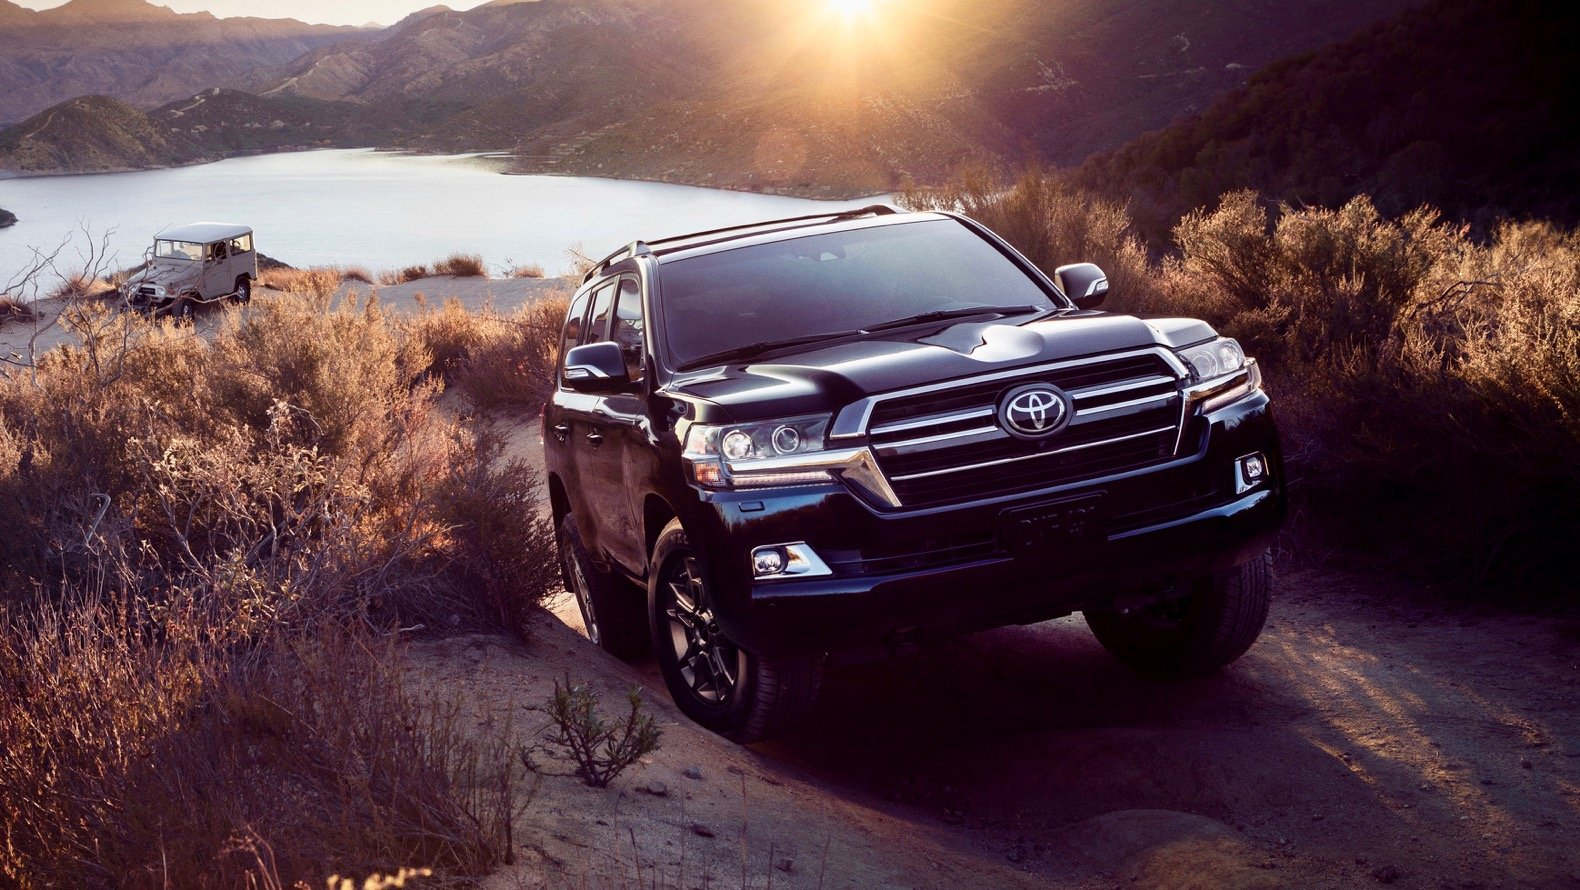 2019 toyota land cruiser gt  review and price in uae